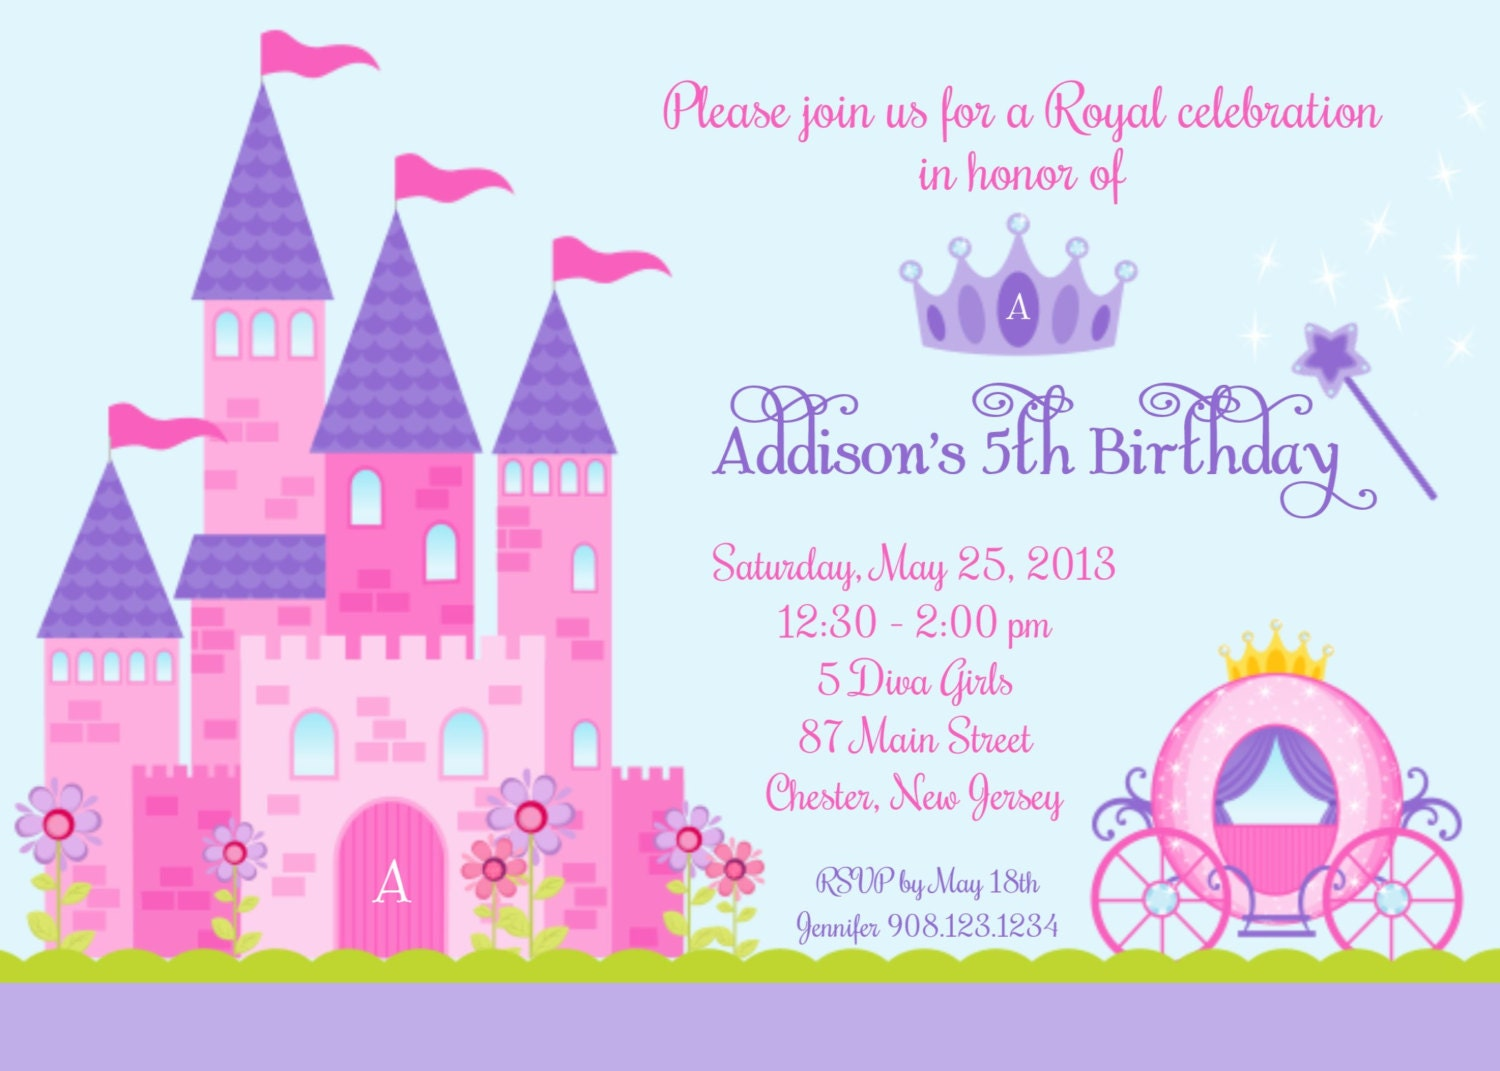 Meet The Baby Party Invitation Wording is nice invitation sample